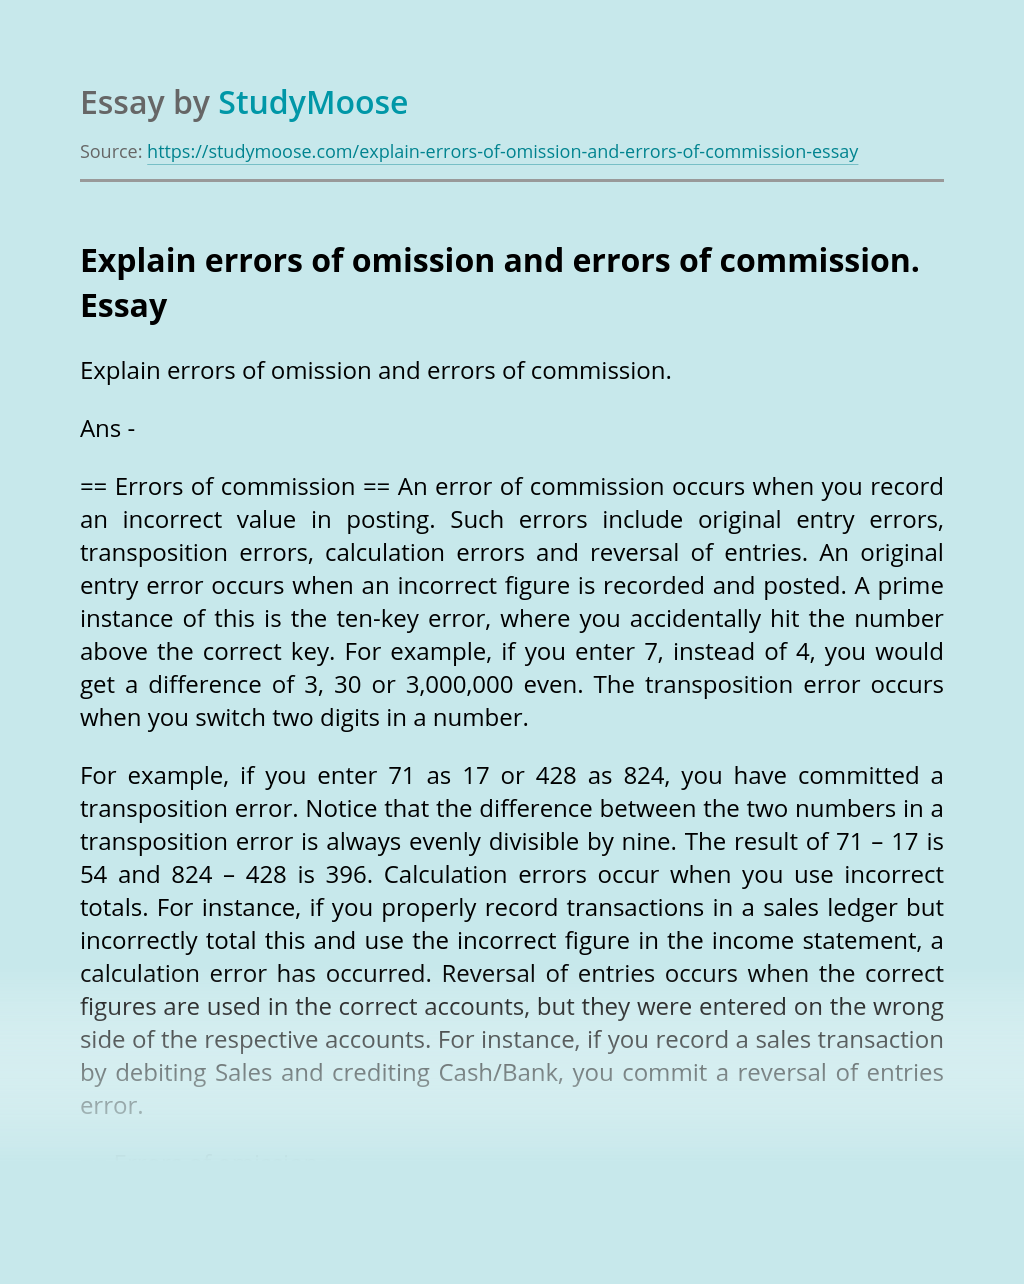 Explain errors of omission and errors of commission